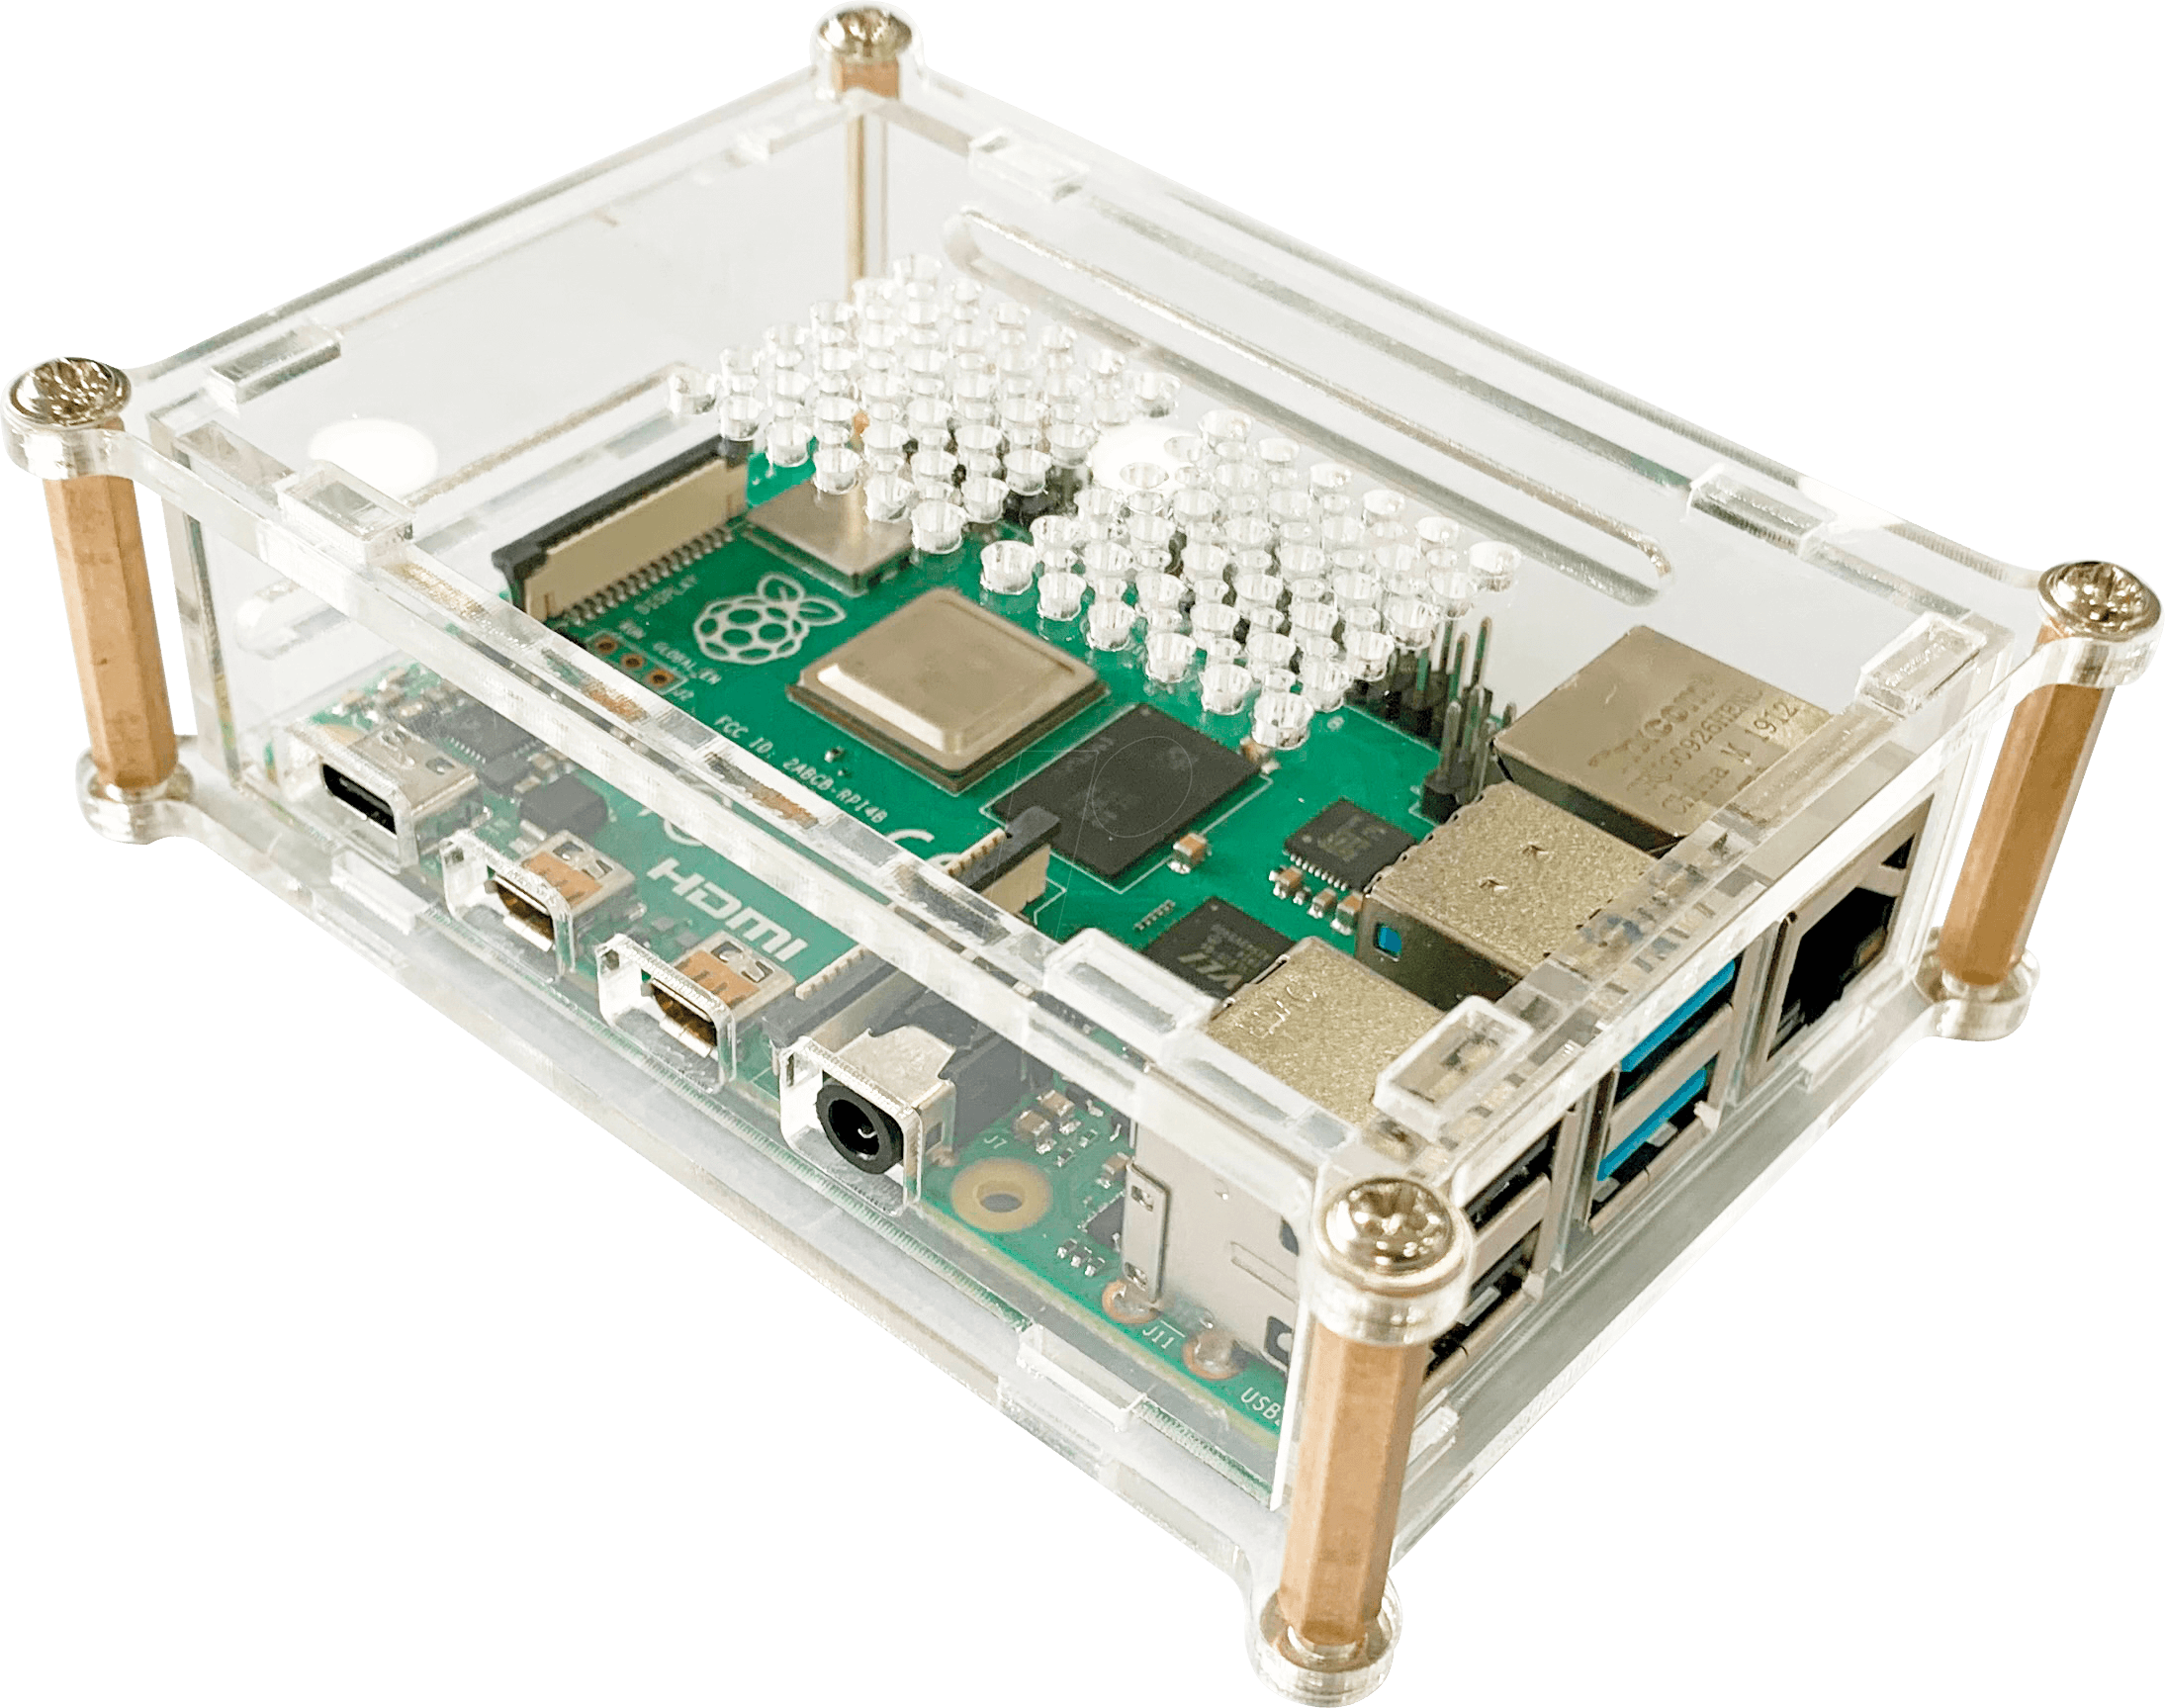 RPI CASE TR 01 - Housing for Raspberry Pi 4, plastic, transparent